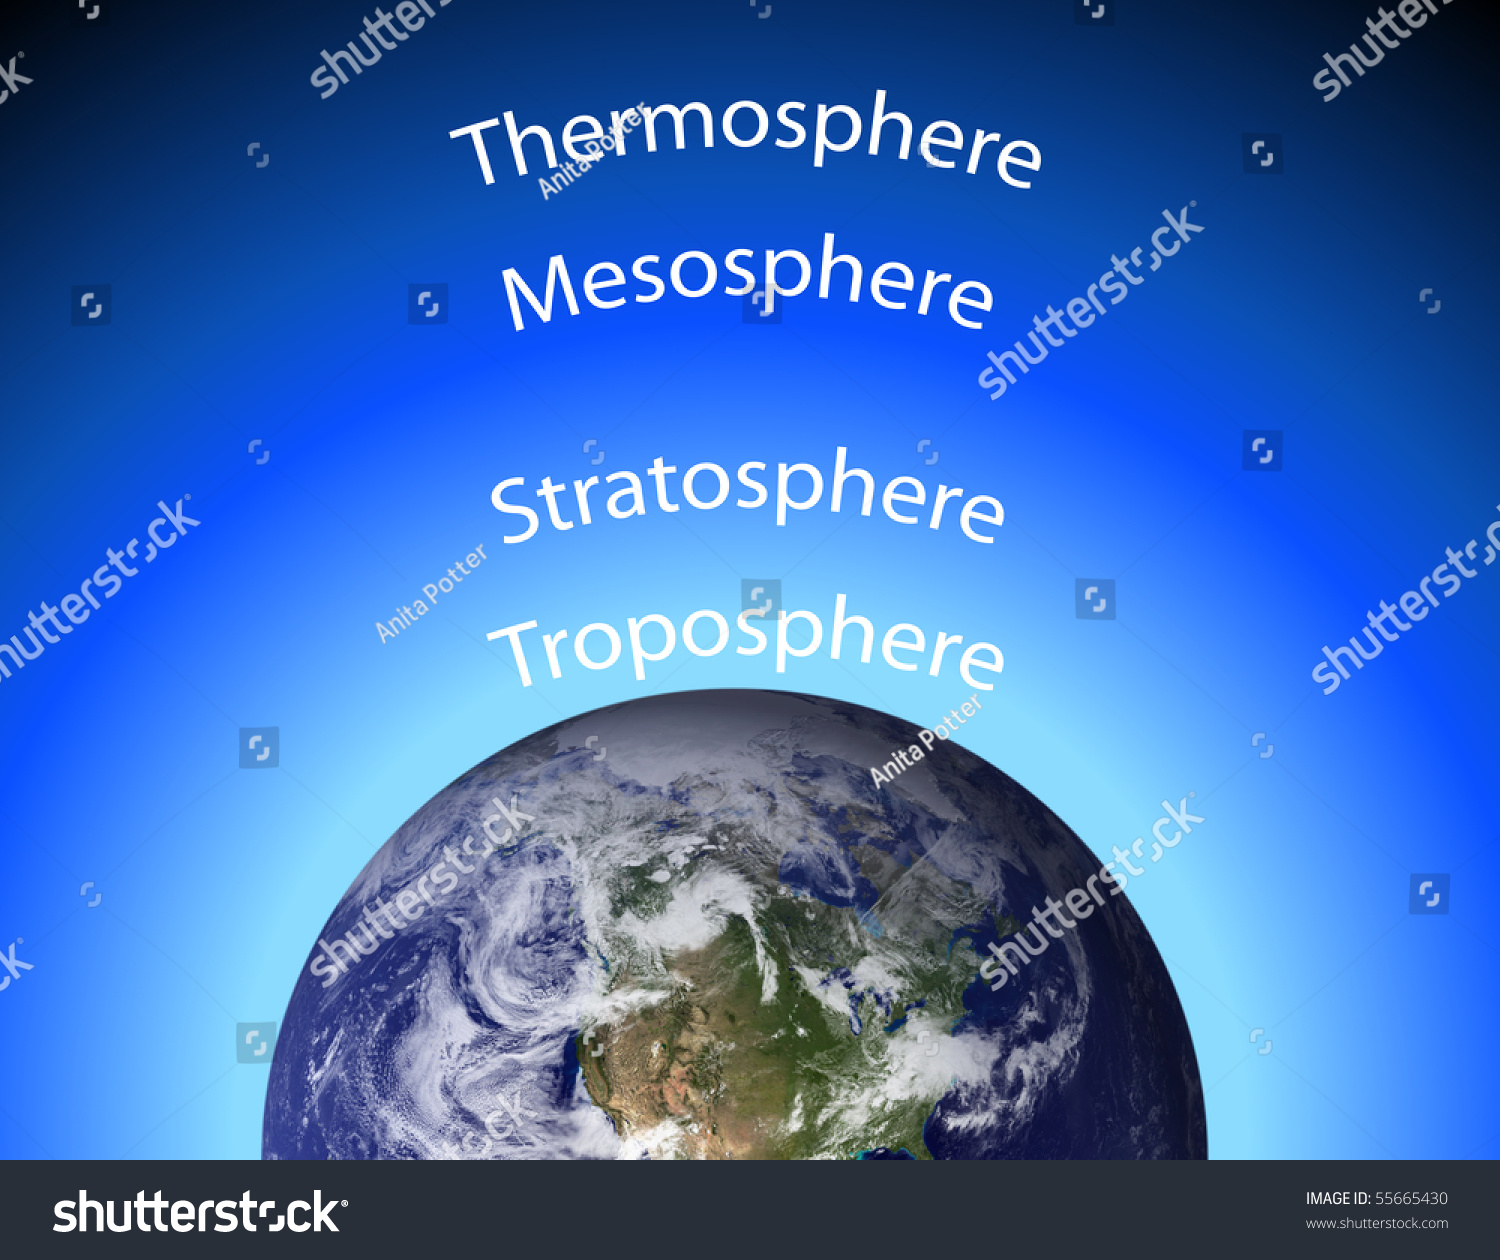 layers of the earth diagram rtd wiring earths atmosphere stock illustration 55665430 - shutterstock